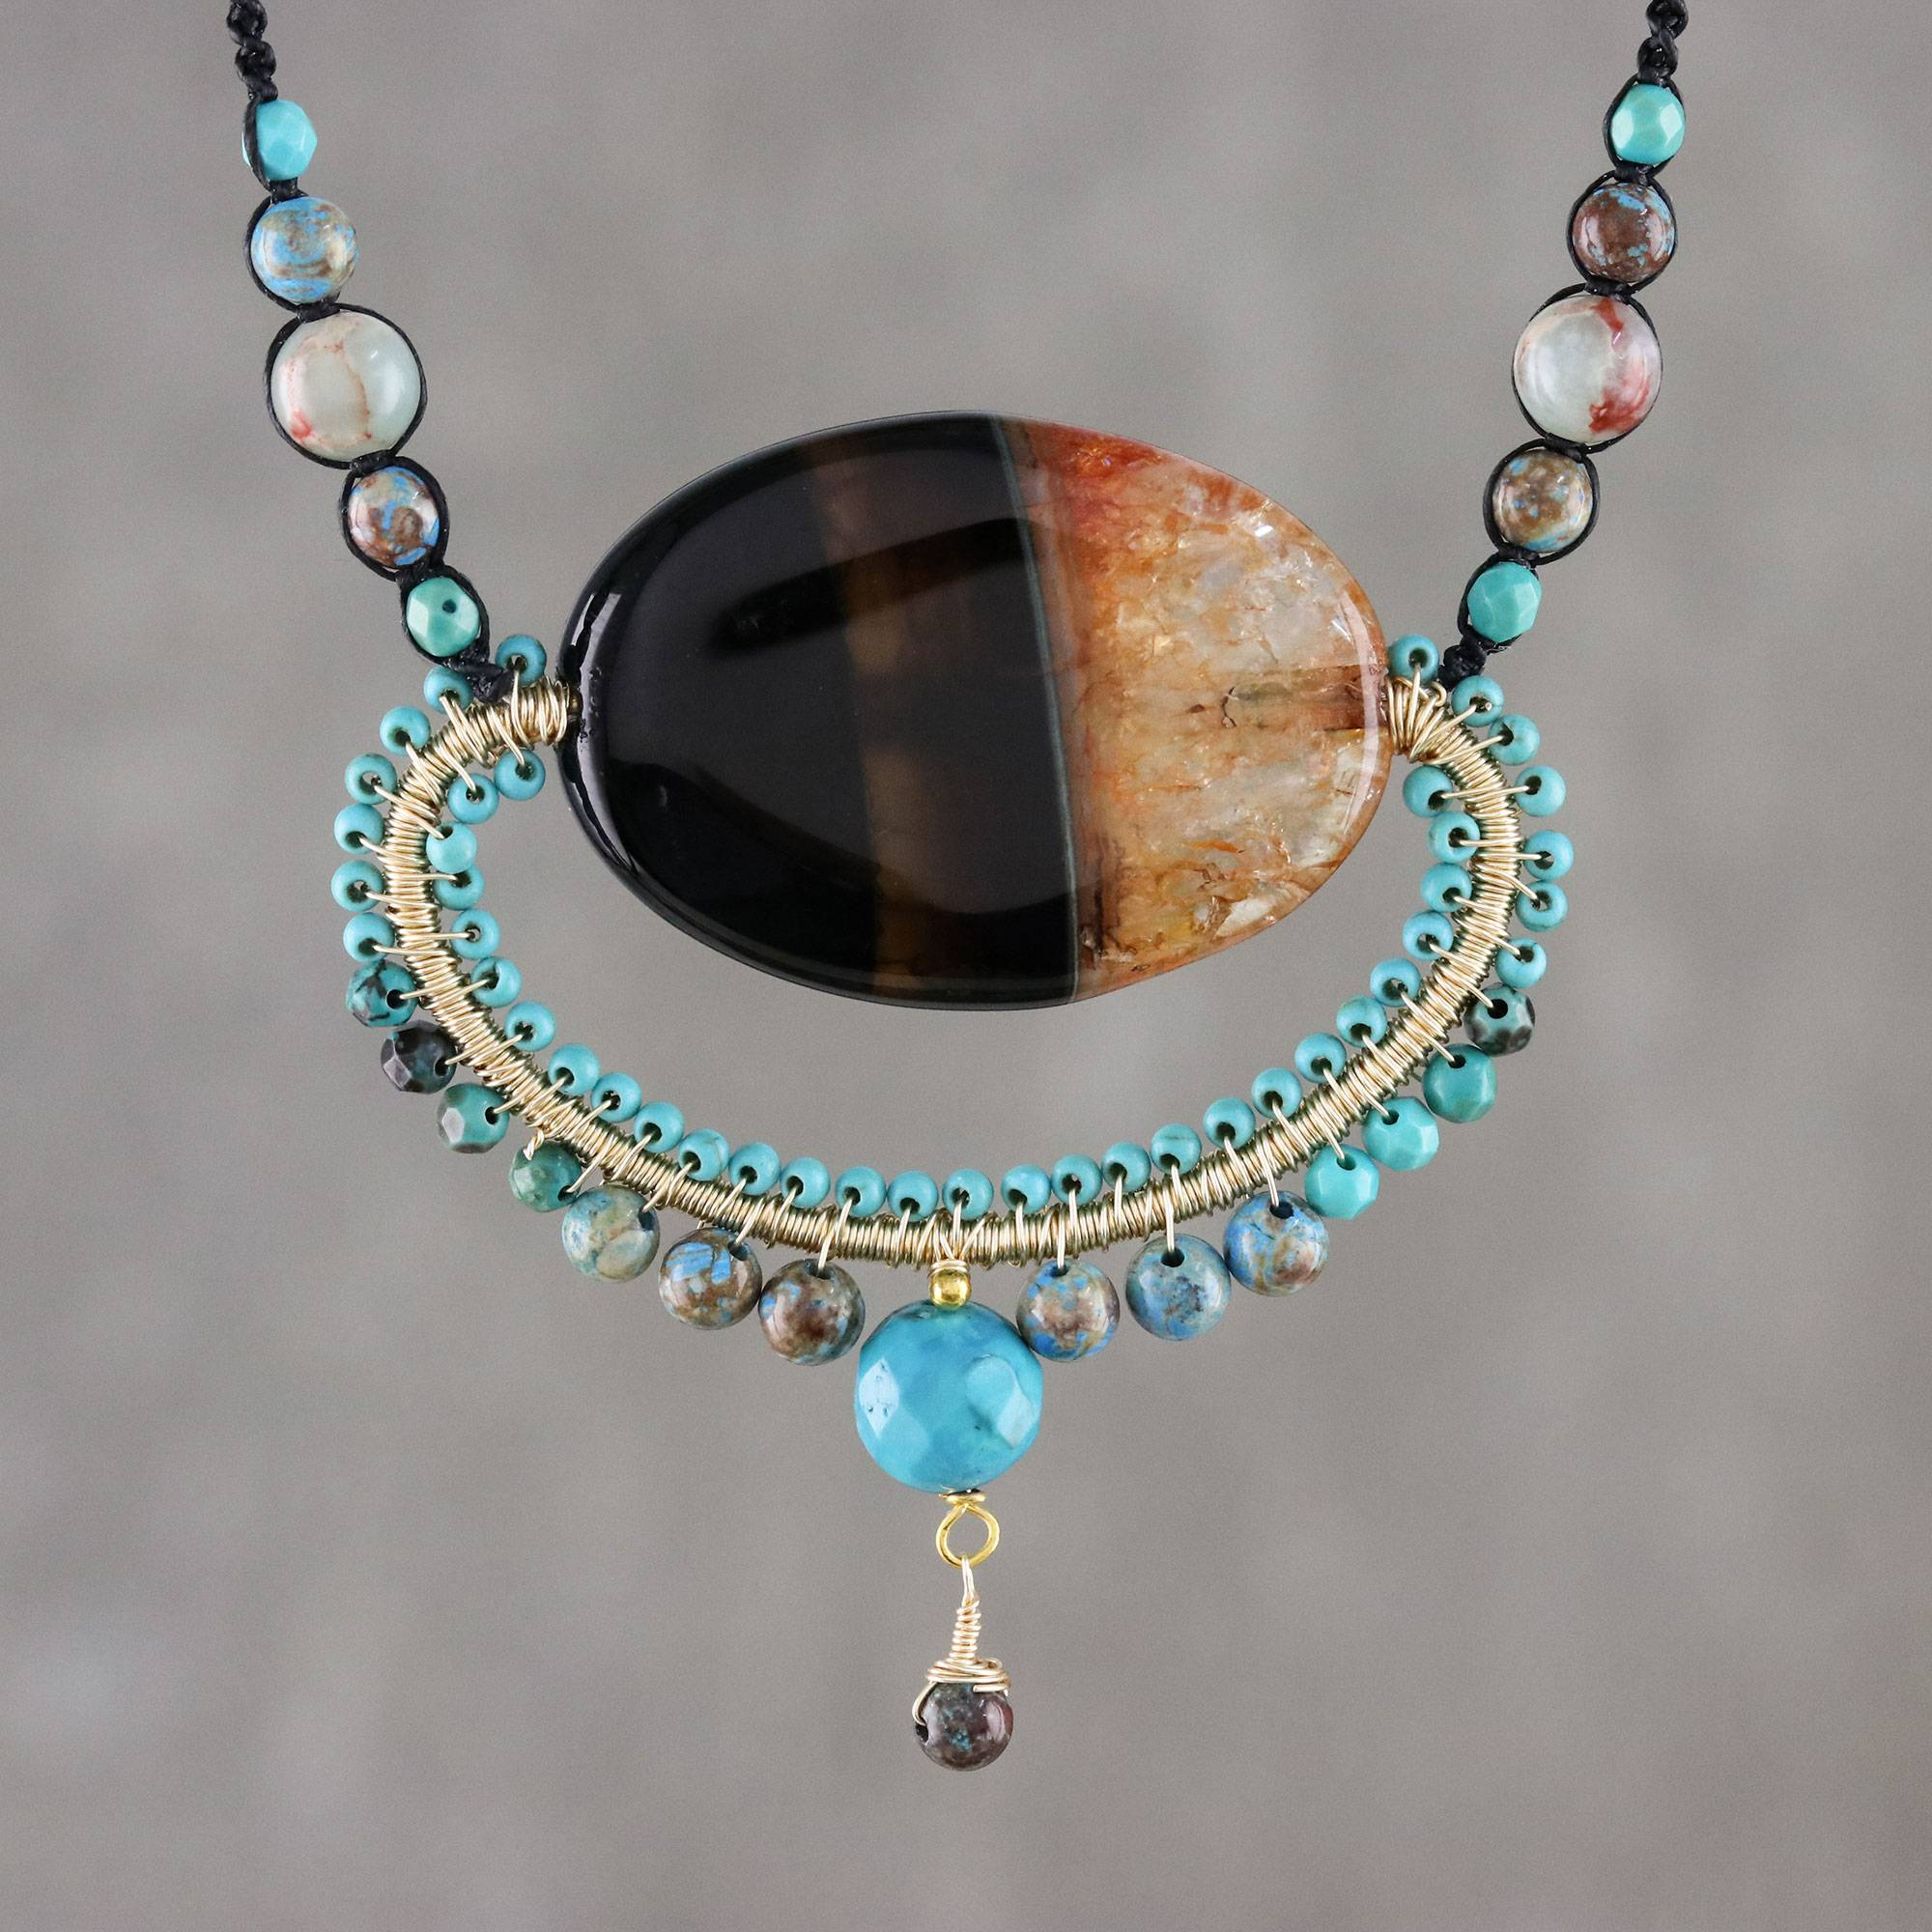 Cosmic Paradise Multi-Gemstone Statement Necklace